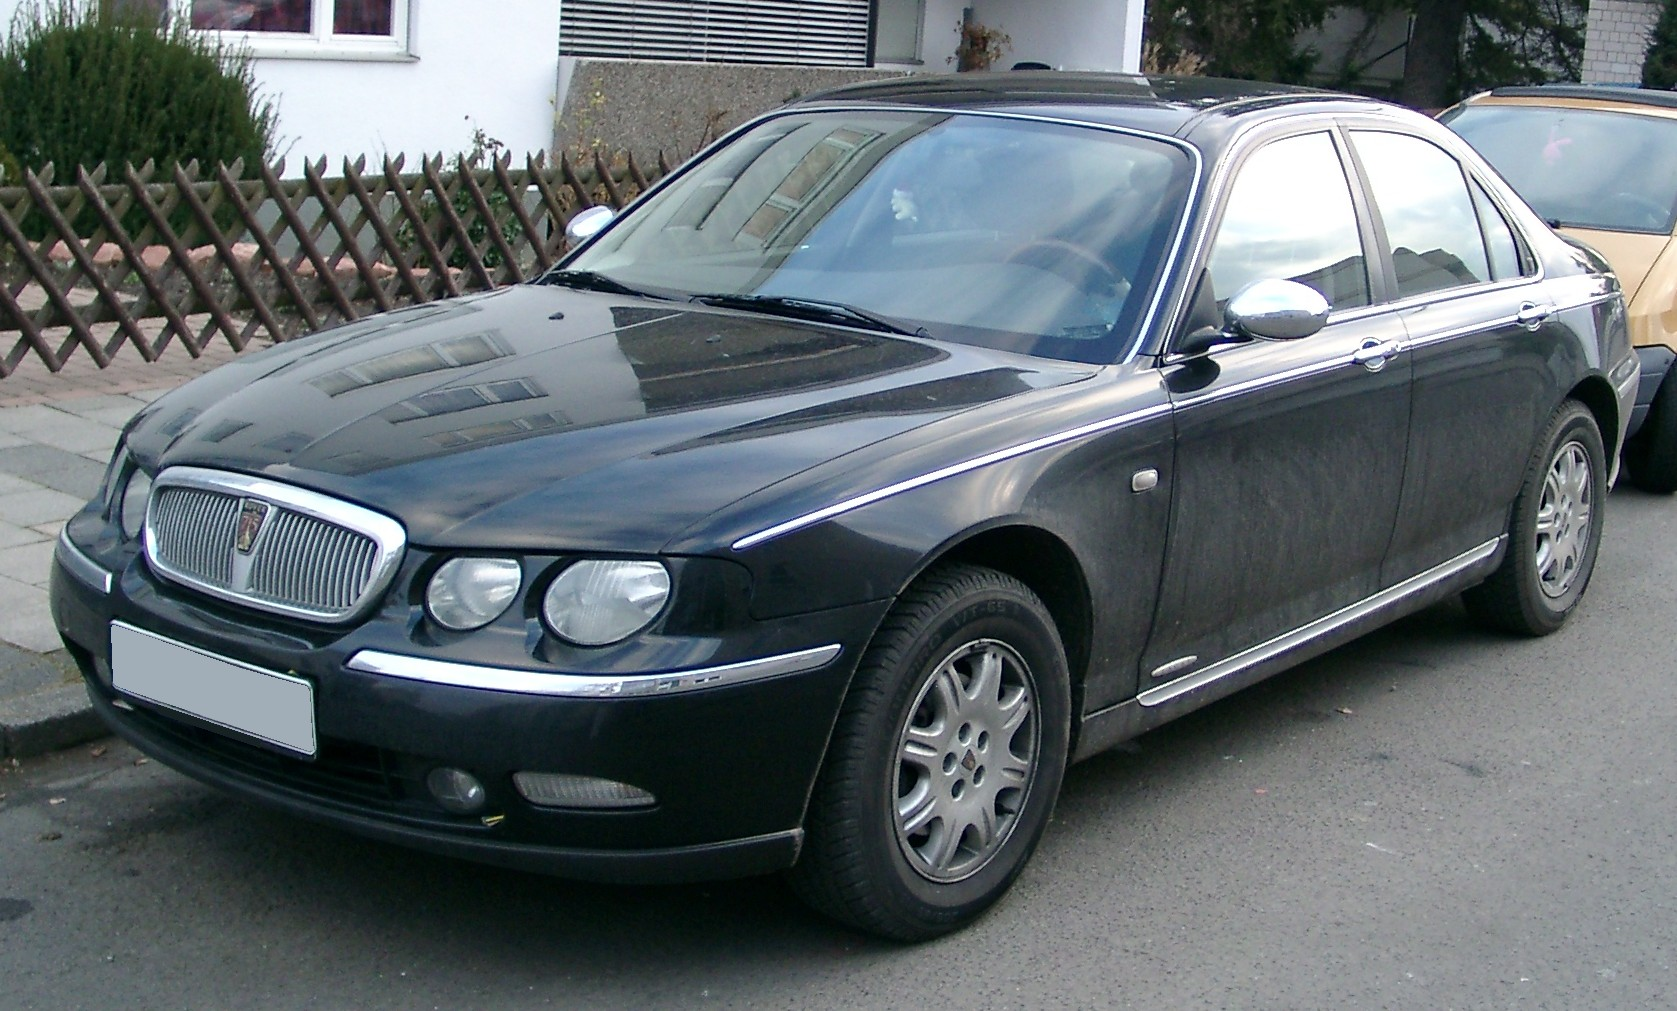 file rover 75 front wikimedia commons. Black Bedroom Furniture Sets. Home Design Ideas